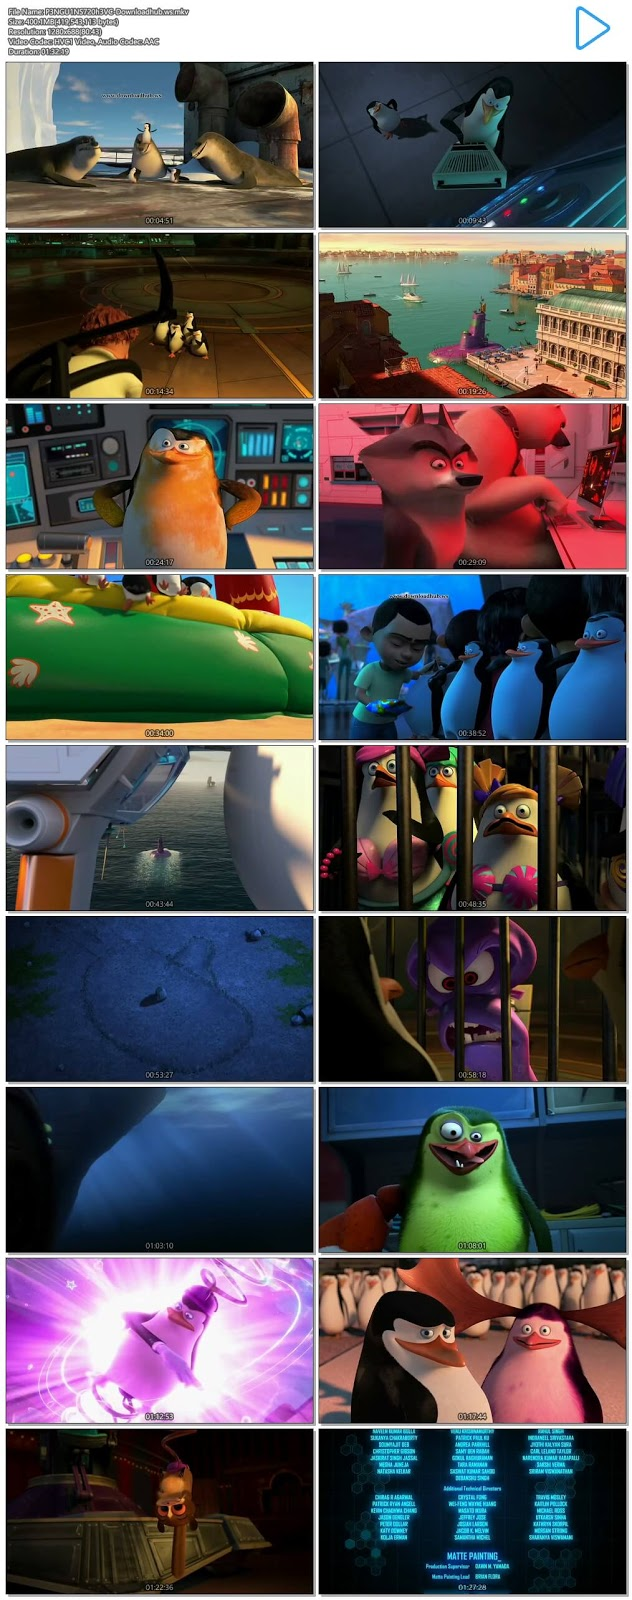 Penguins of Madagascar 2014 English 720p HEVC BRRip ESubs